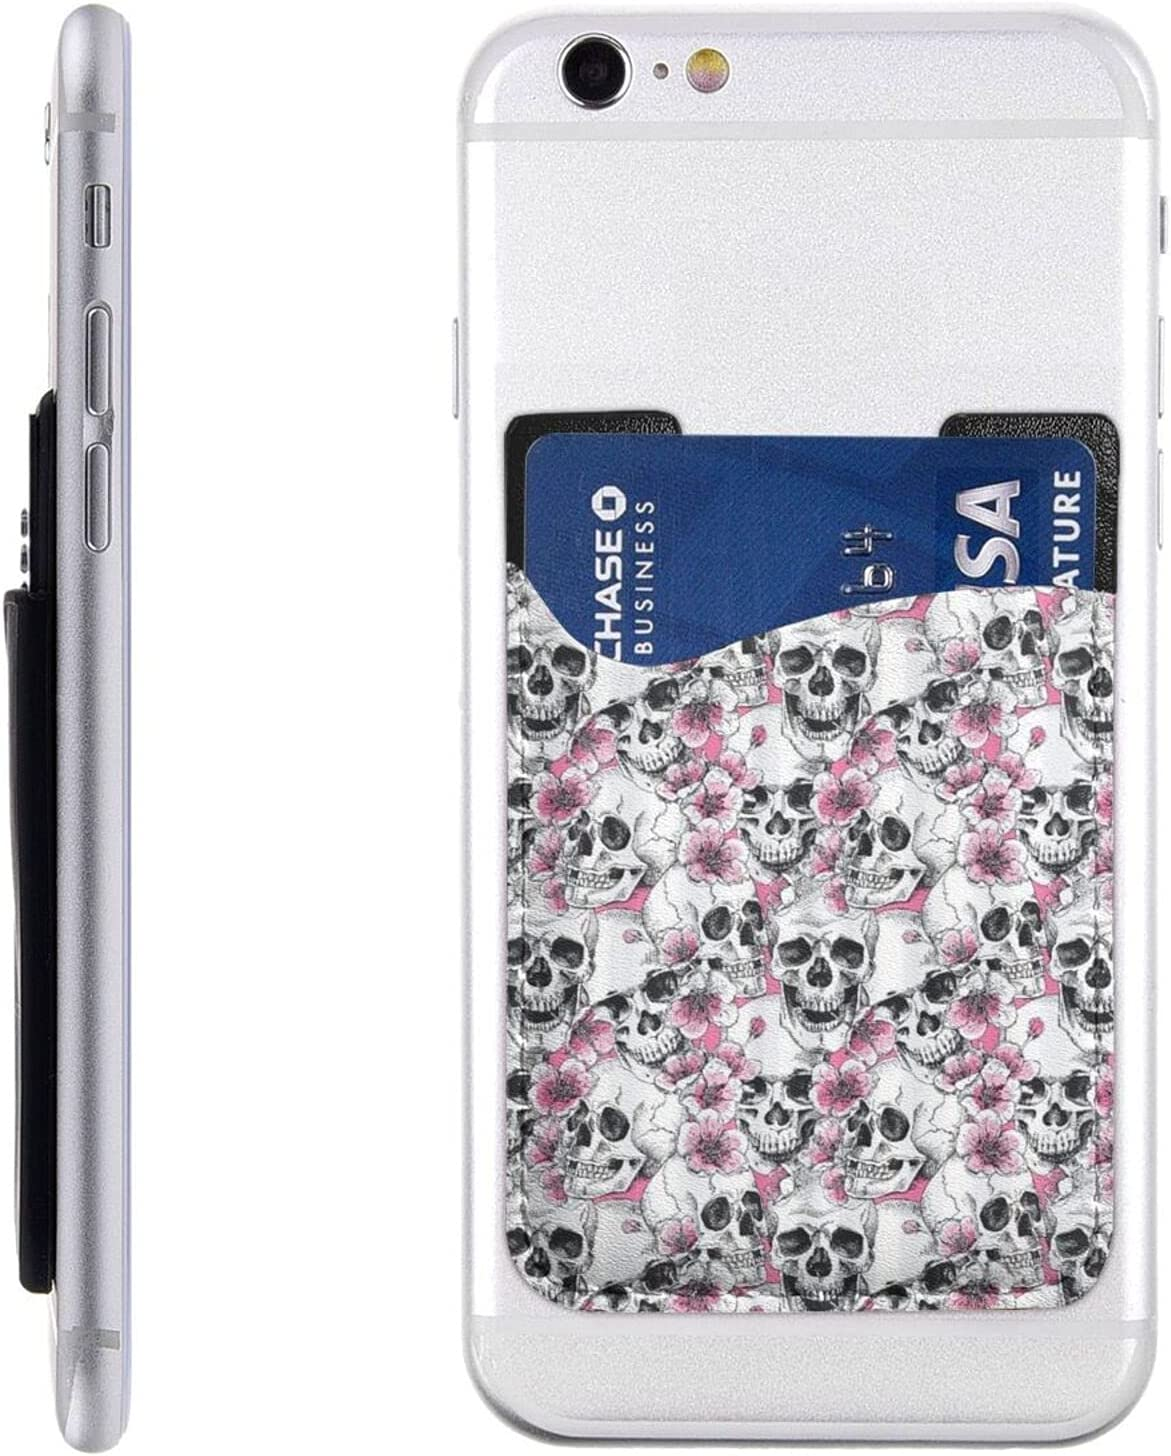 Floral Skull Phone Manufacturer OFFicial shop Card Holder Stick New Shipping Free Cell On Wallet S